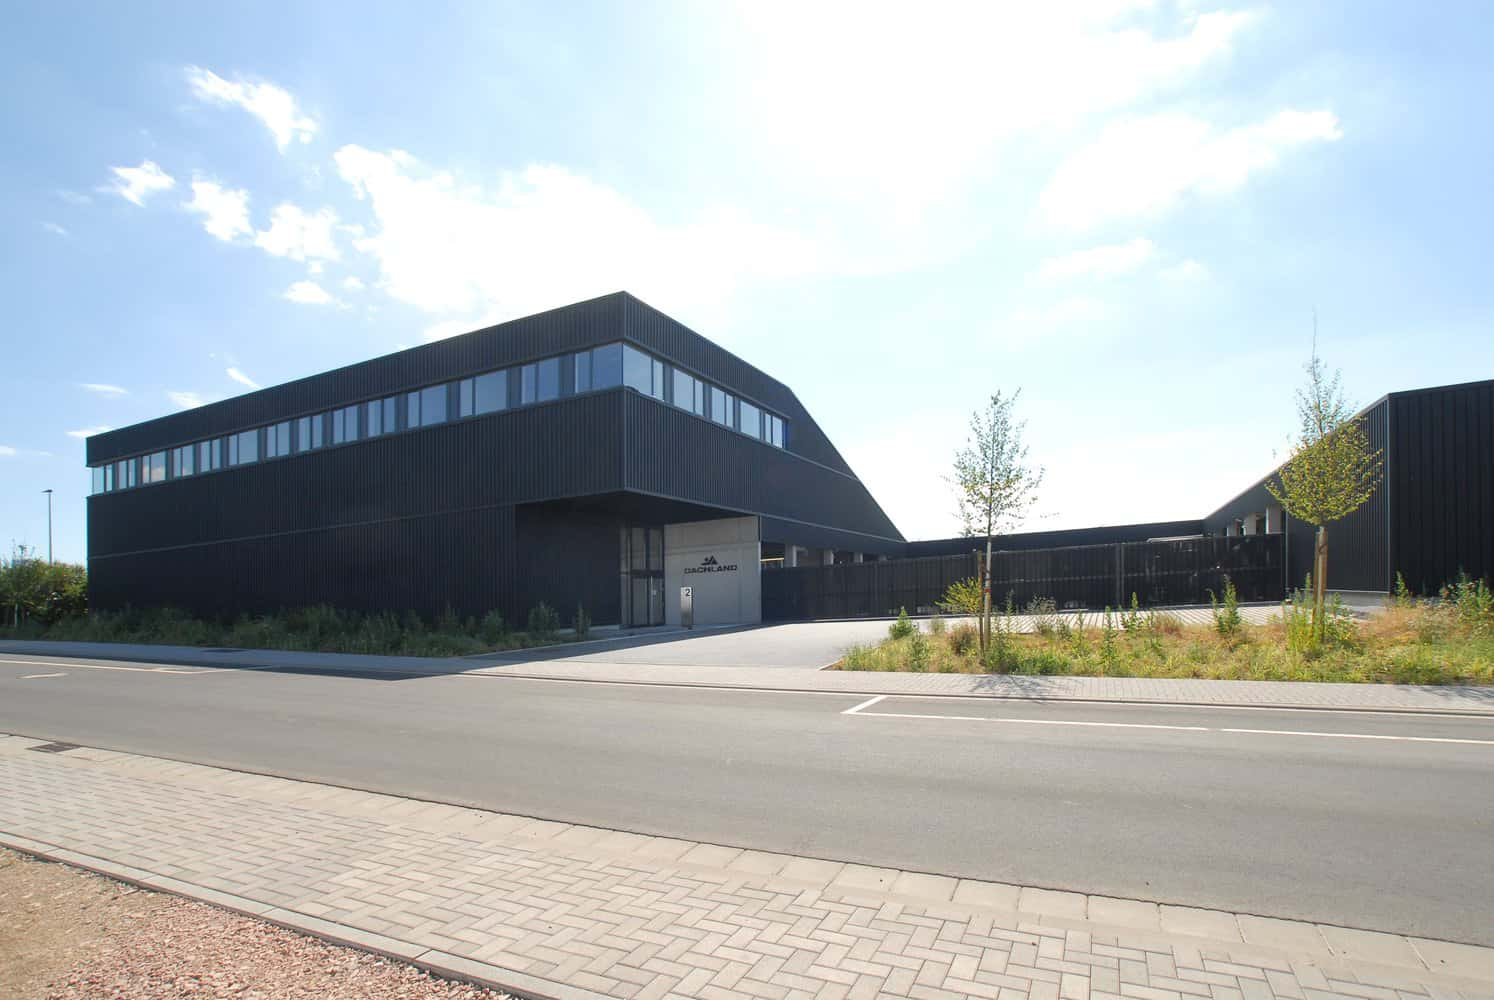 New Headquarters of the Dachland Offices in the City of Hechtsheim, Germany